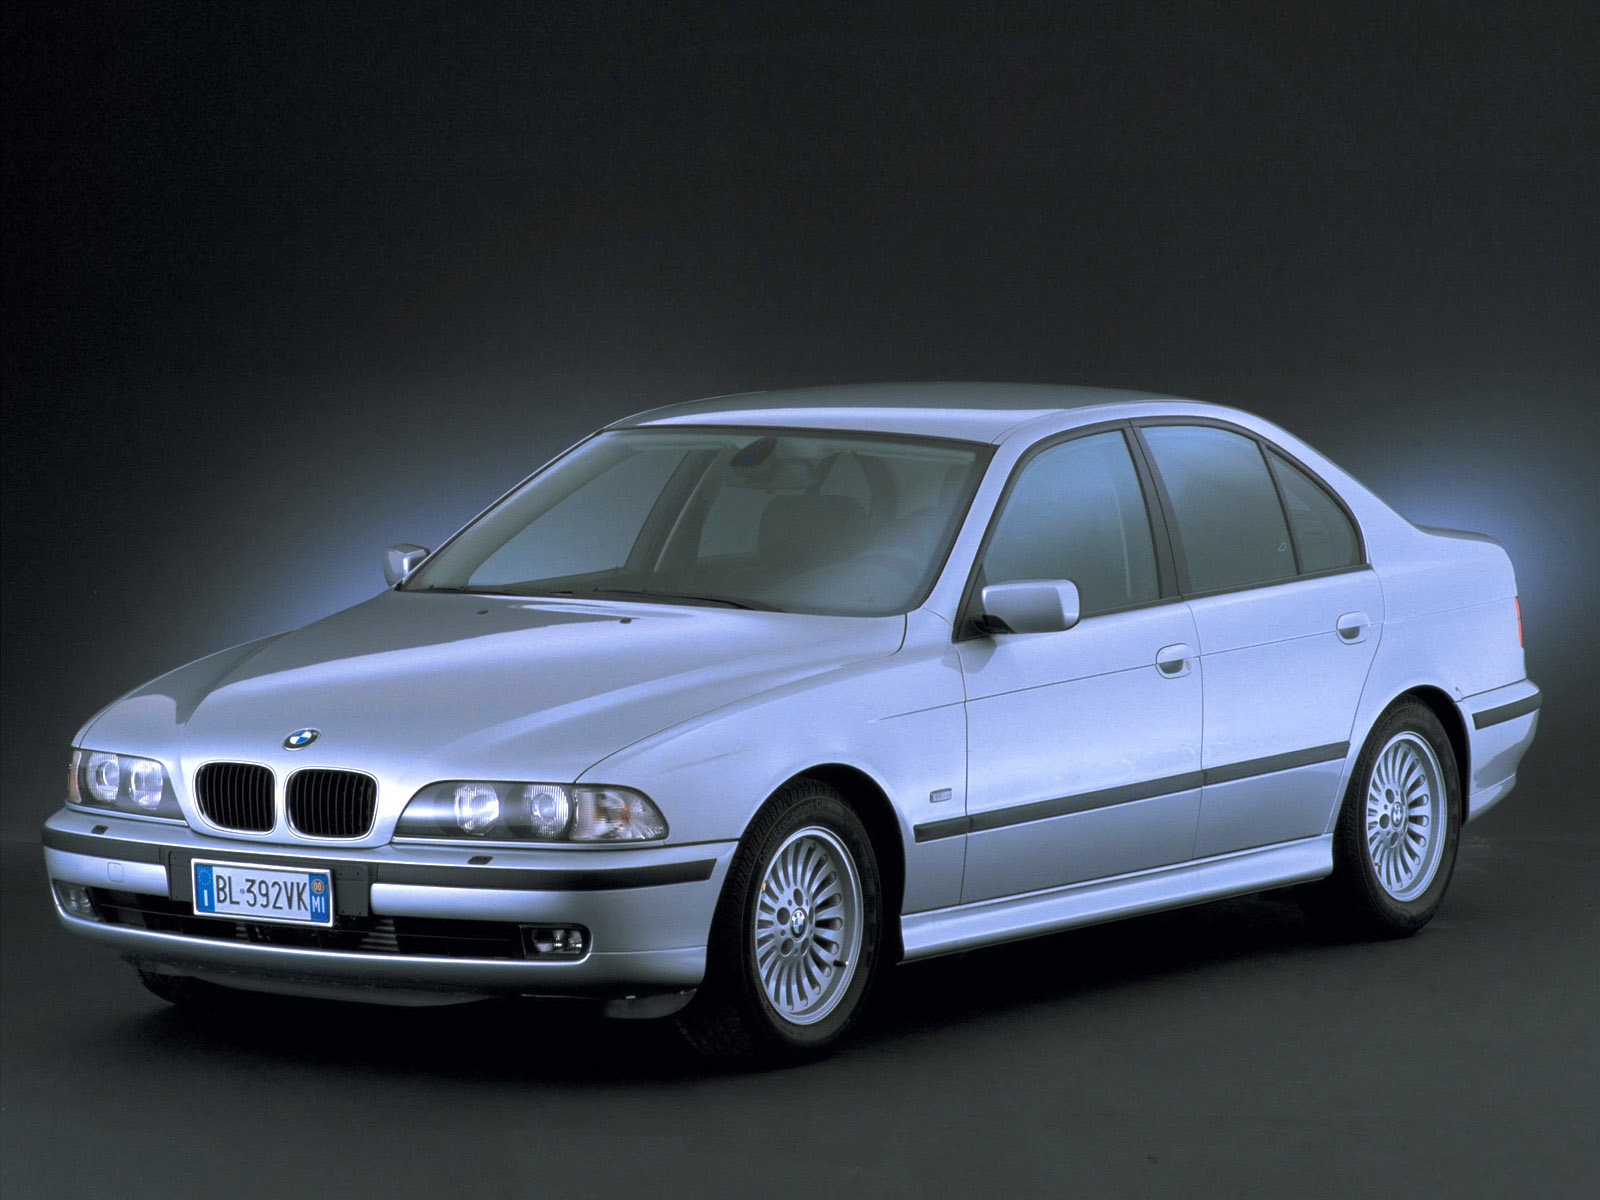 BMW 5 series 520d 2000 photo - 1